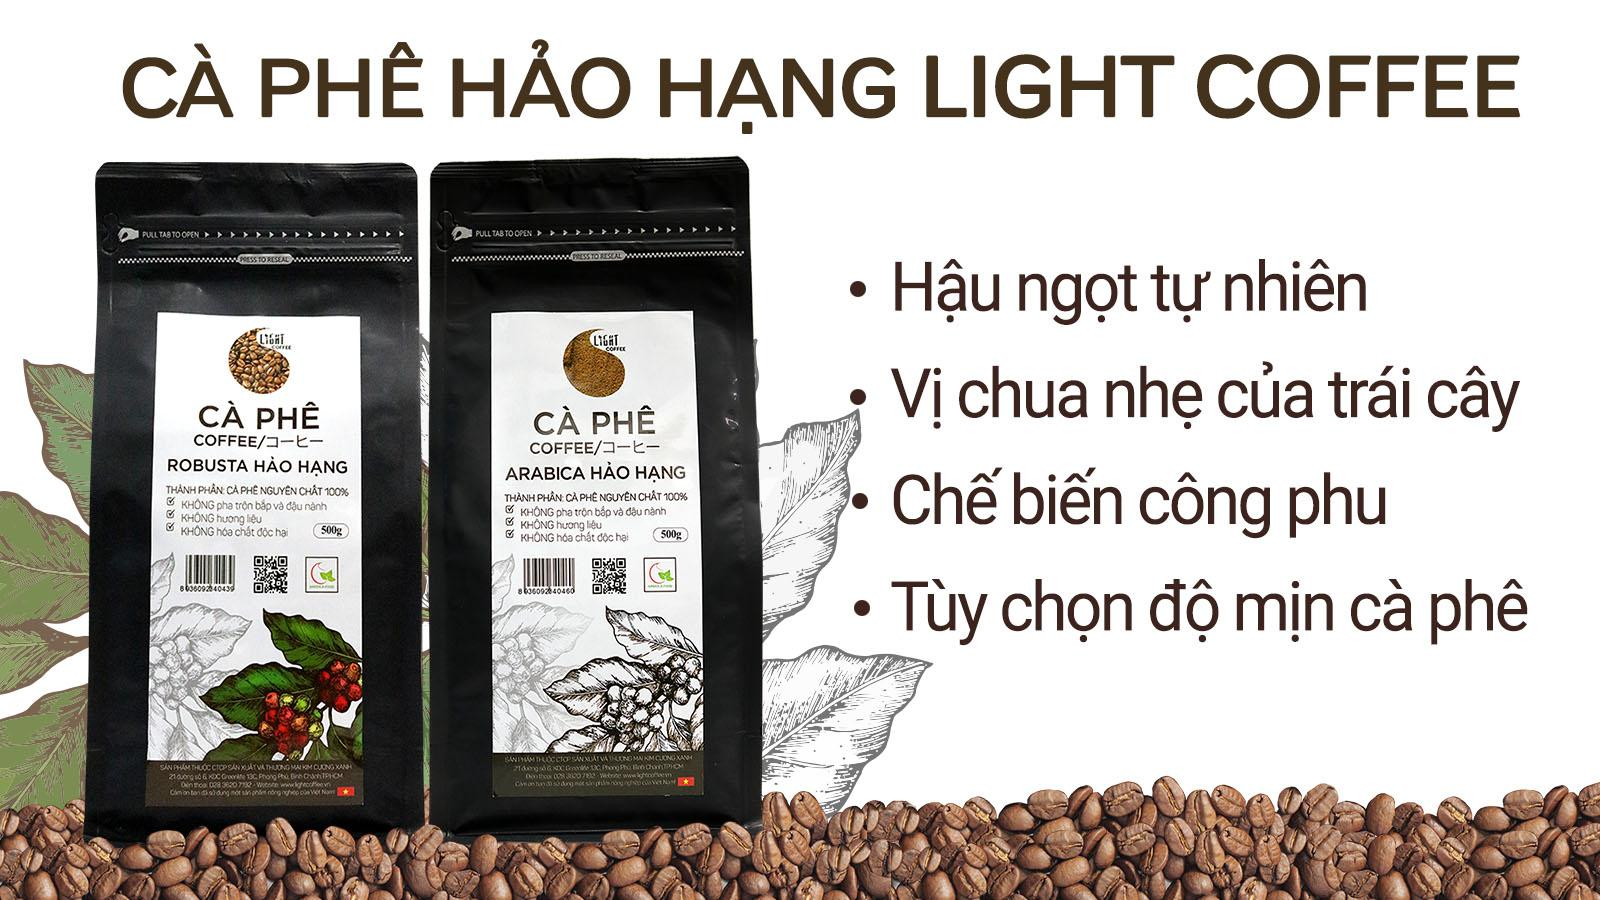 cafe-ca-phe-nguyen-chat-hao-hang-light-coffee.jpg